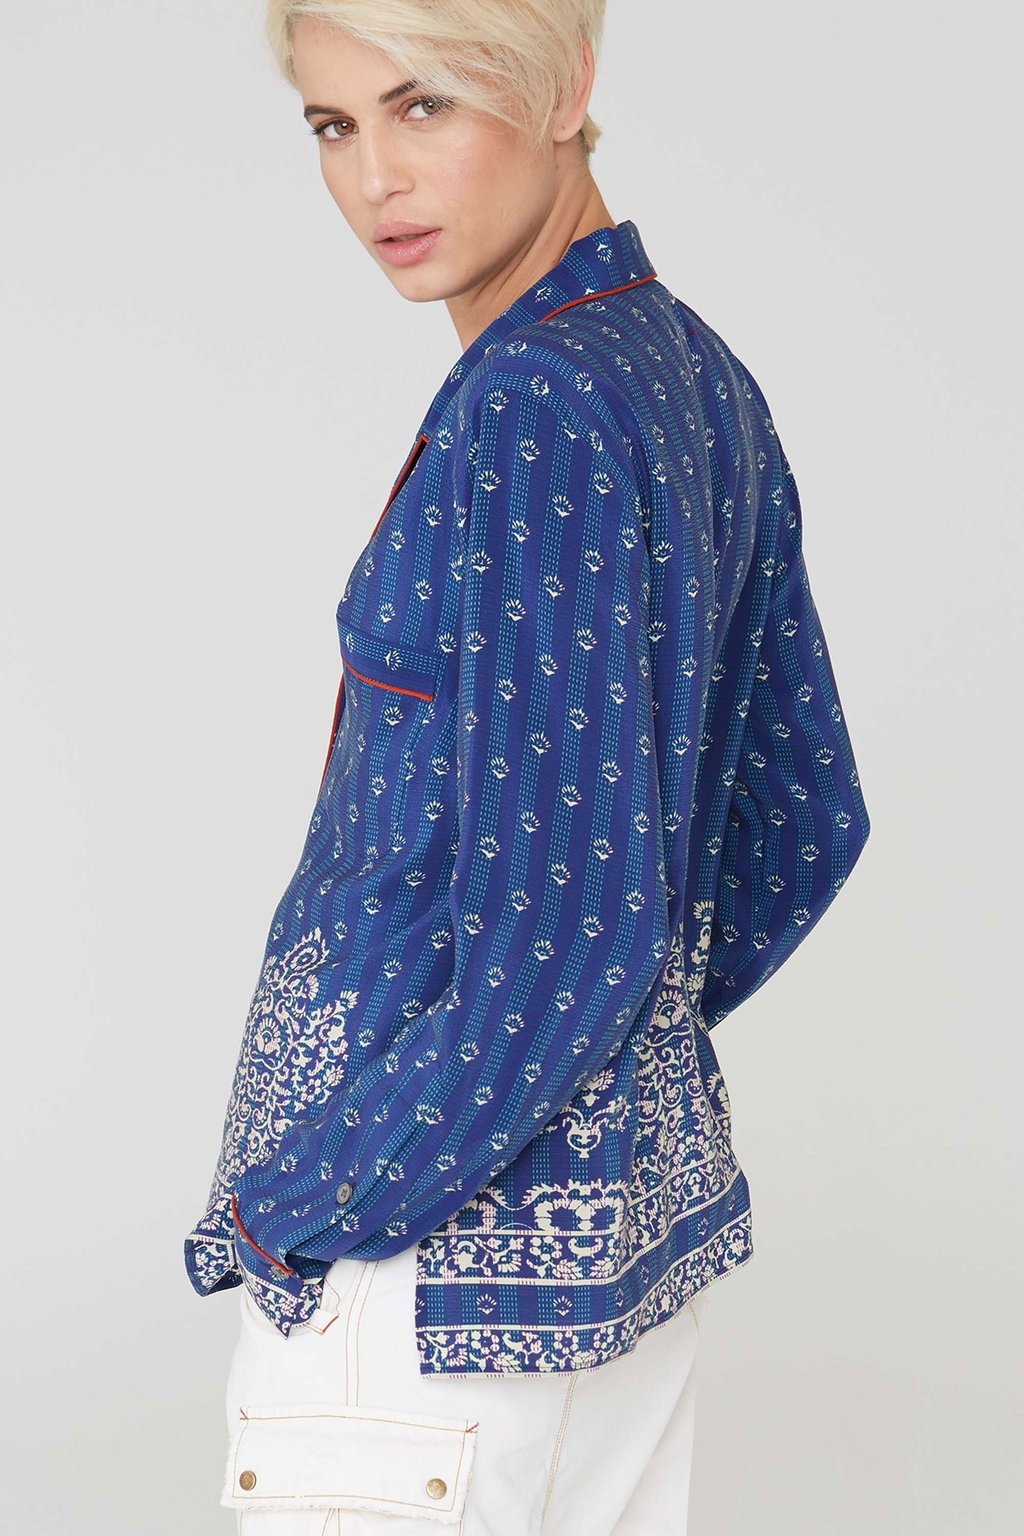 La Boheme Farah Silk Filigree Border Print PJ Shirt